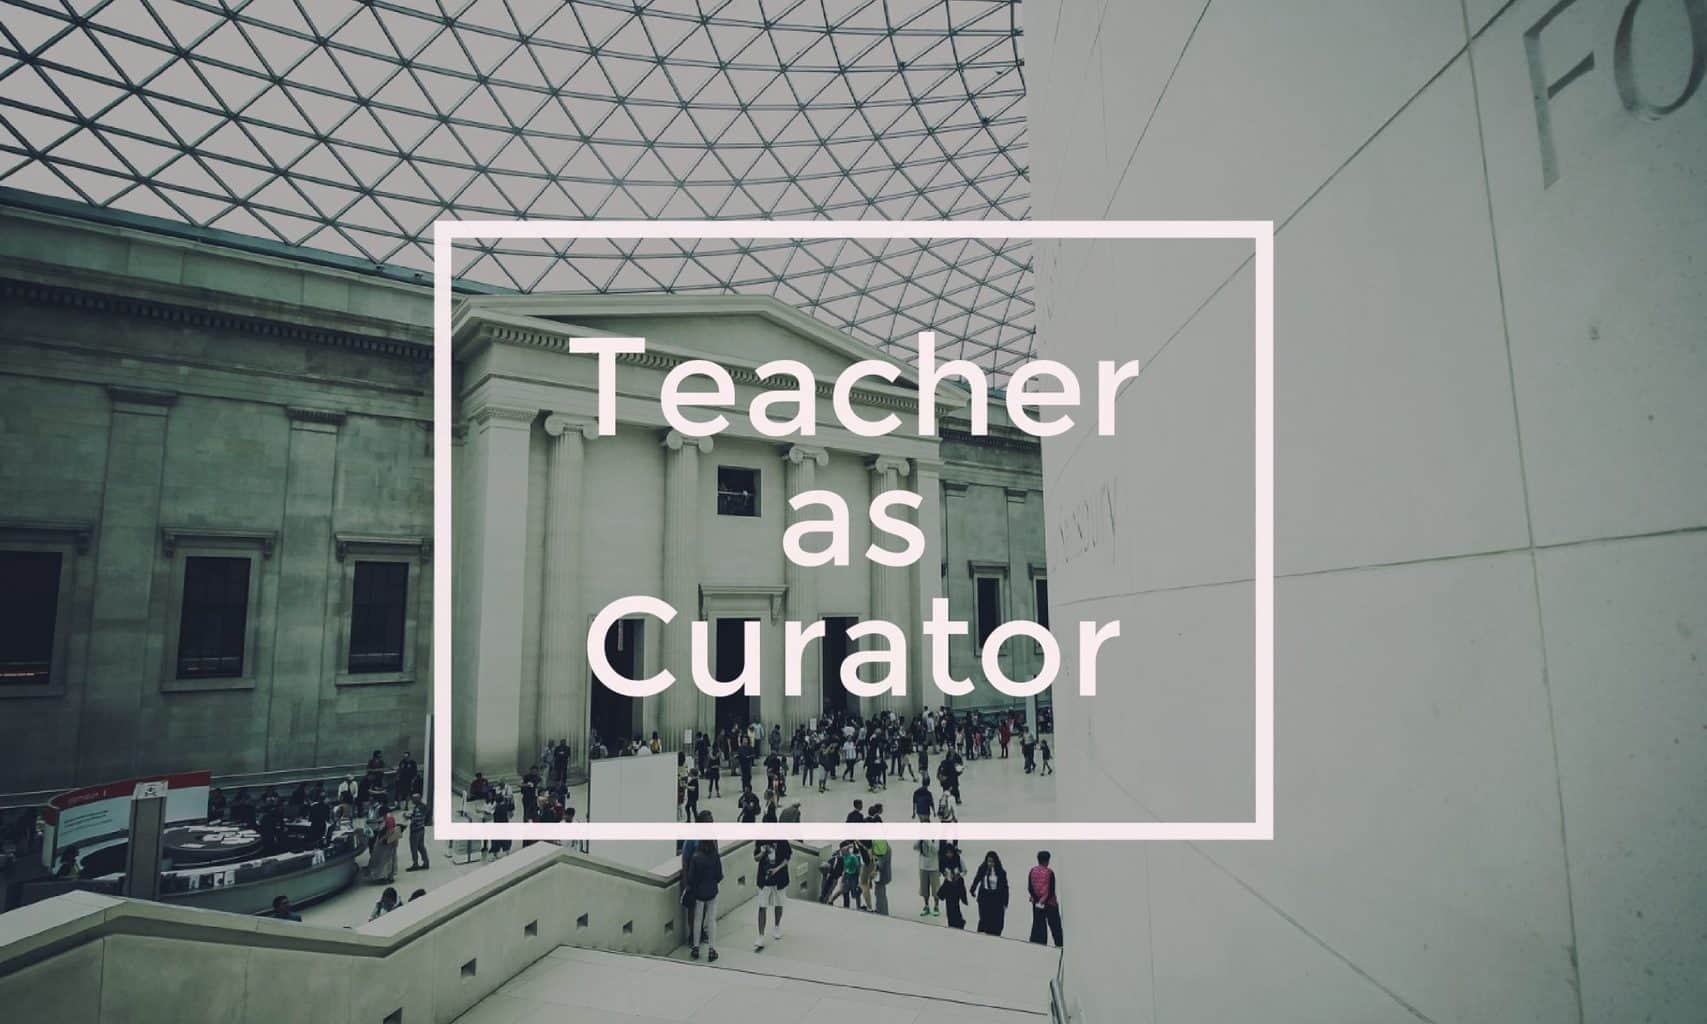 Teacher as curator